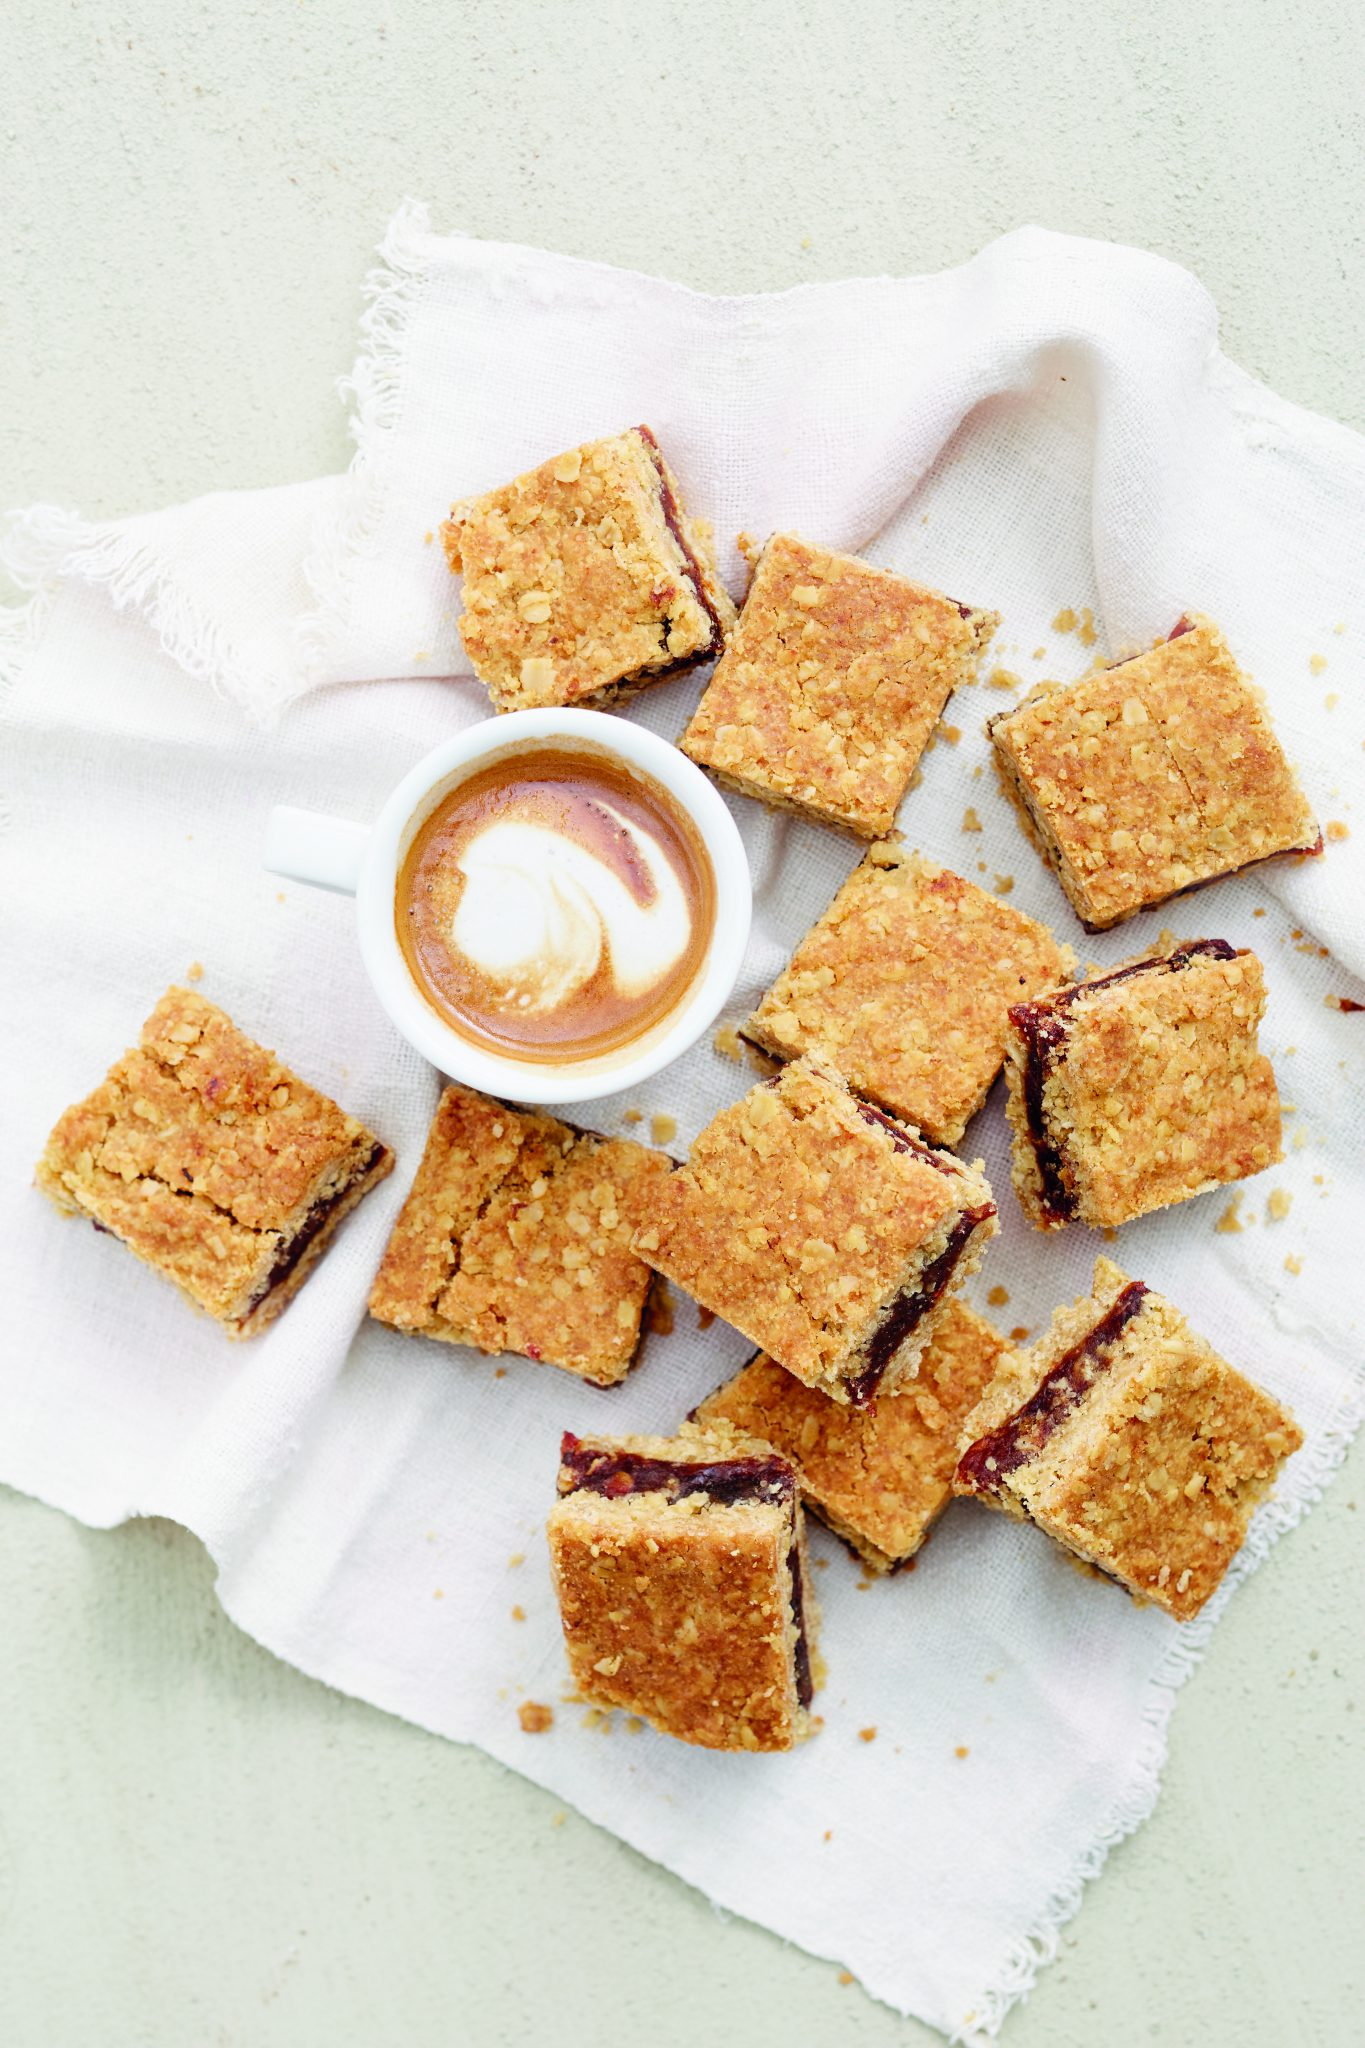 Make Oat Cakes At Home